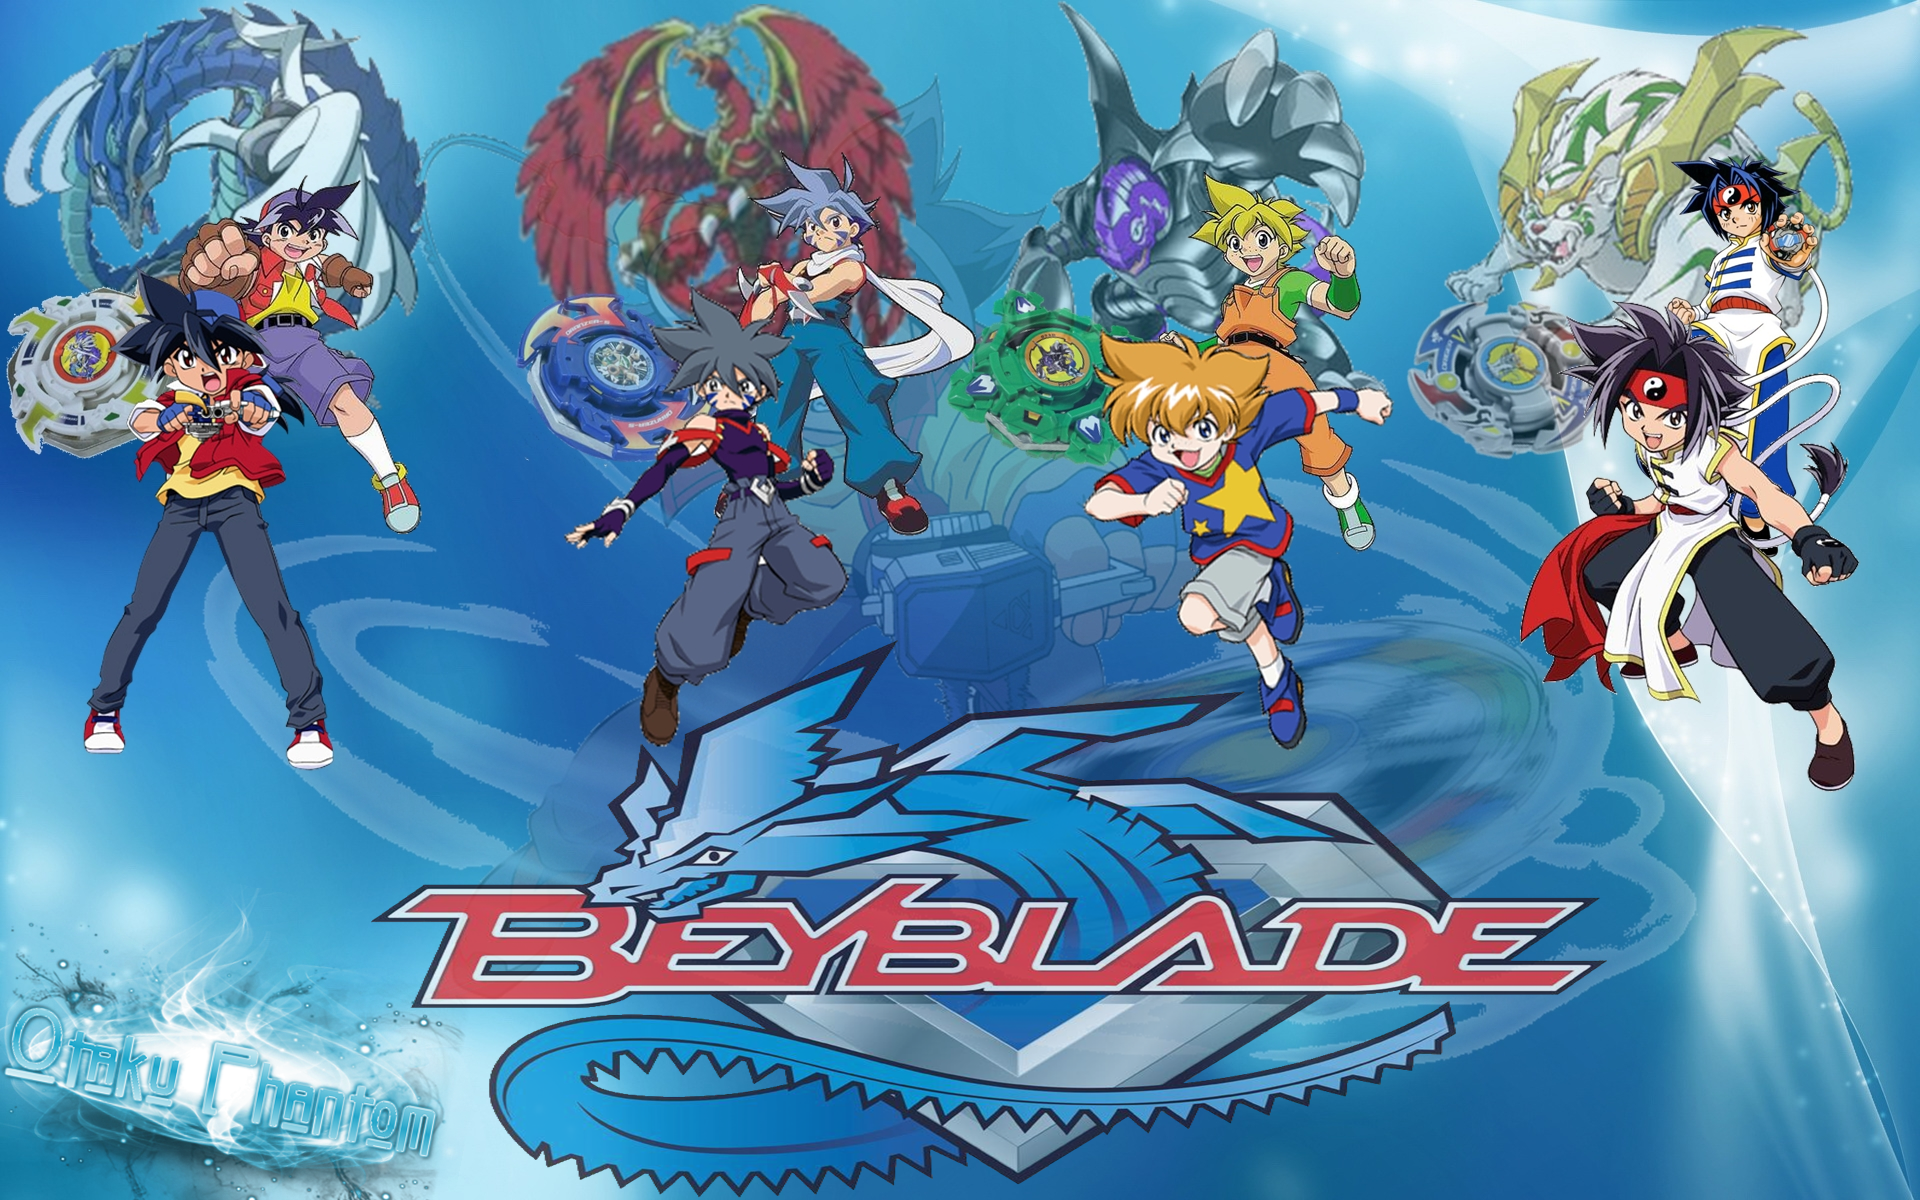 Beyblade wallpaper characters wallpapersafari for Deviantart wallpaper